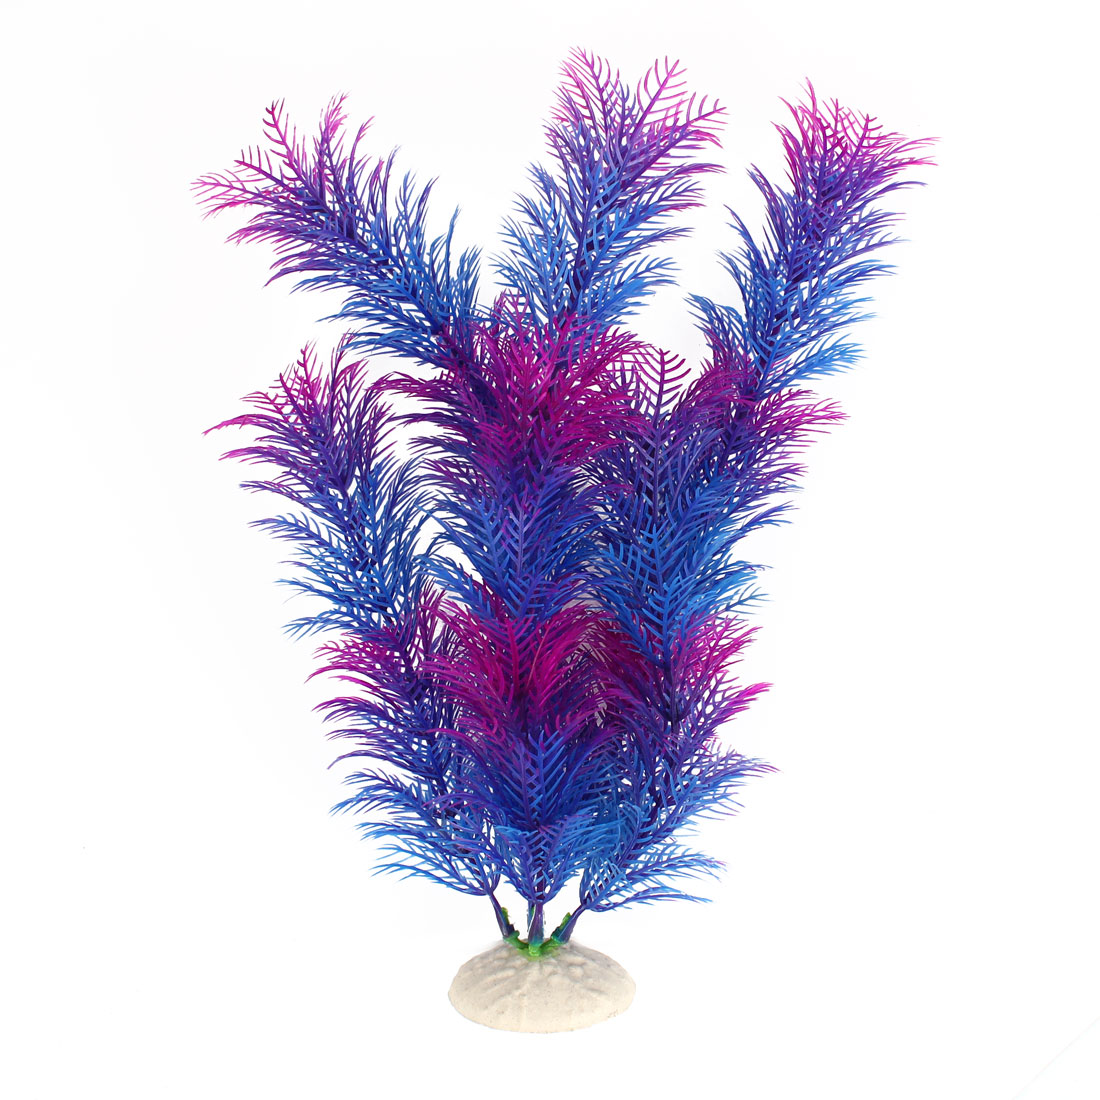 "Fuchsia Blue 12.2"" Height Fish Tank Plastic Simulation Aquatic Plant Ornament Decor"